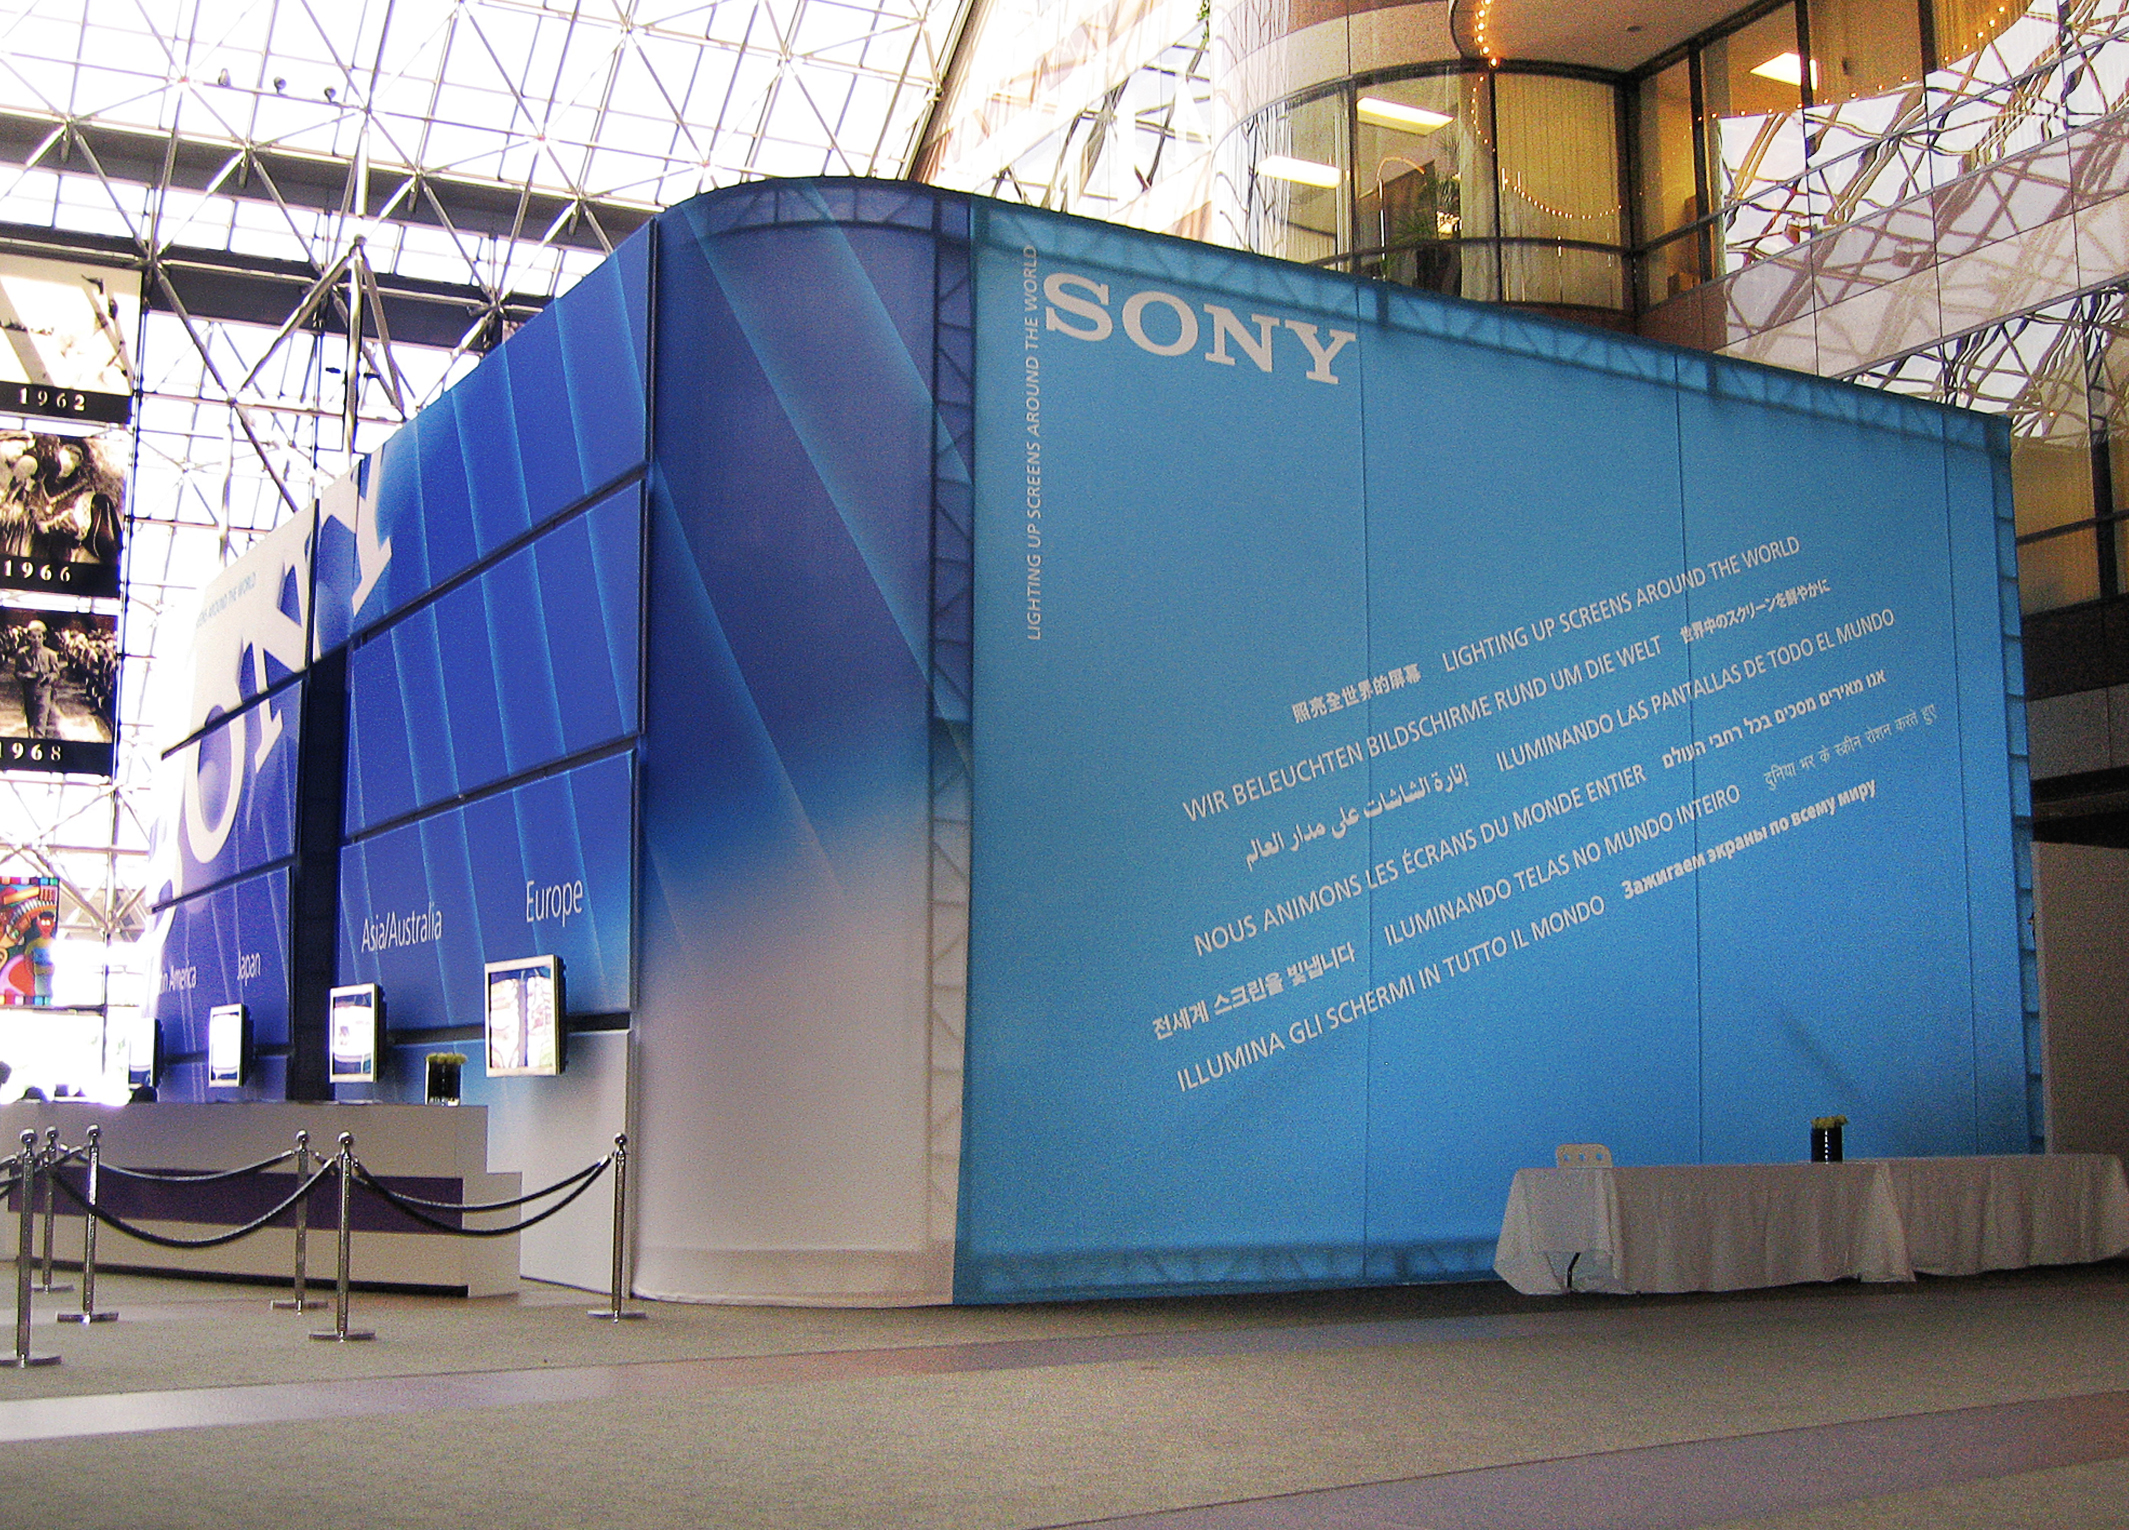 special event-sony-4.jpg